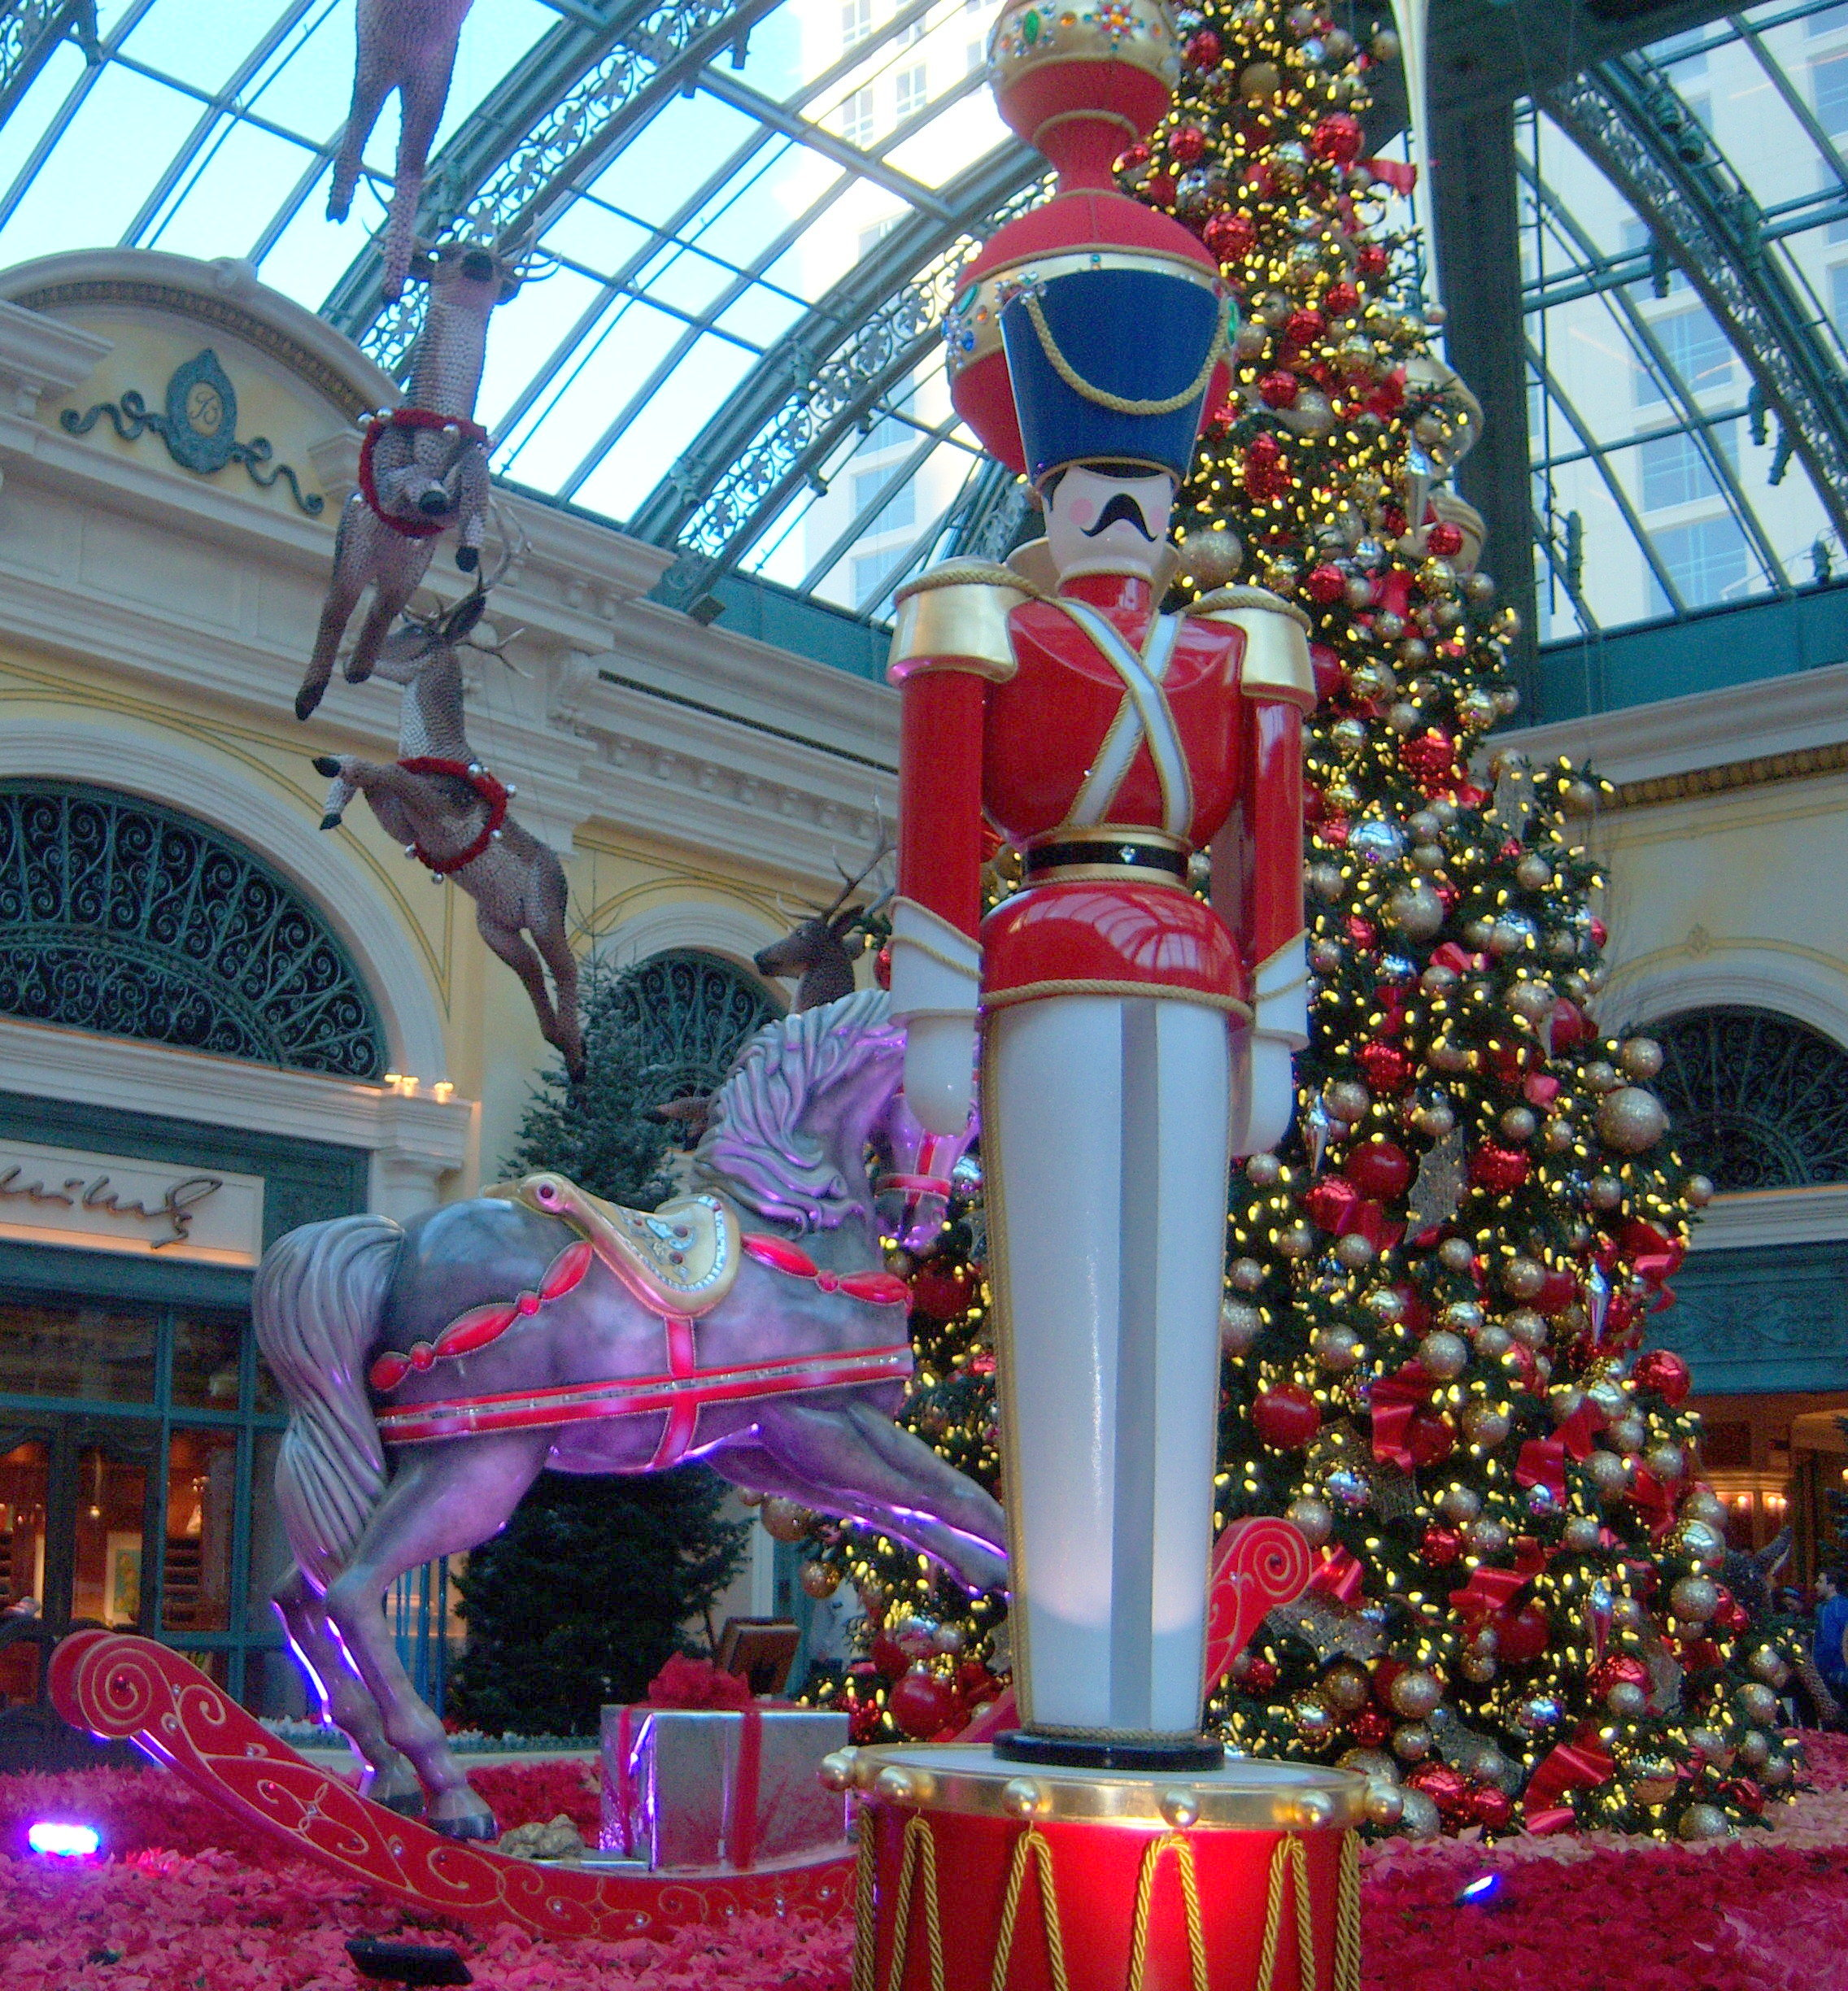 Bellagio las vegas christmas decorations for When does las vegas decorate for christmas